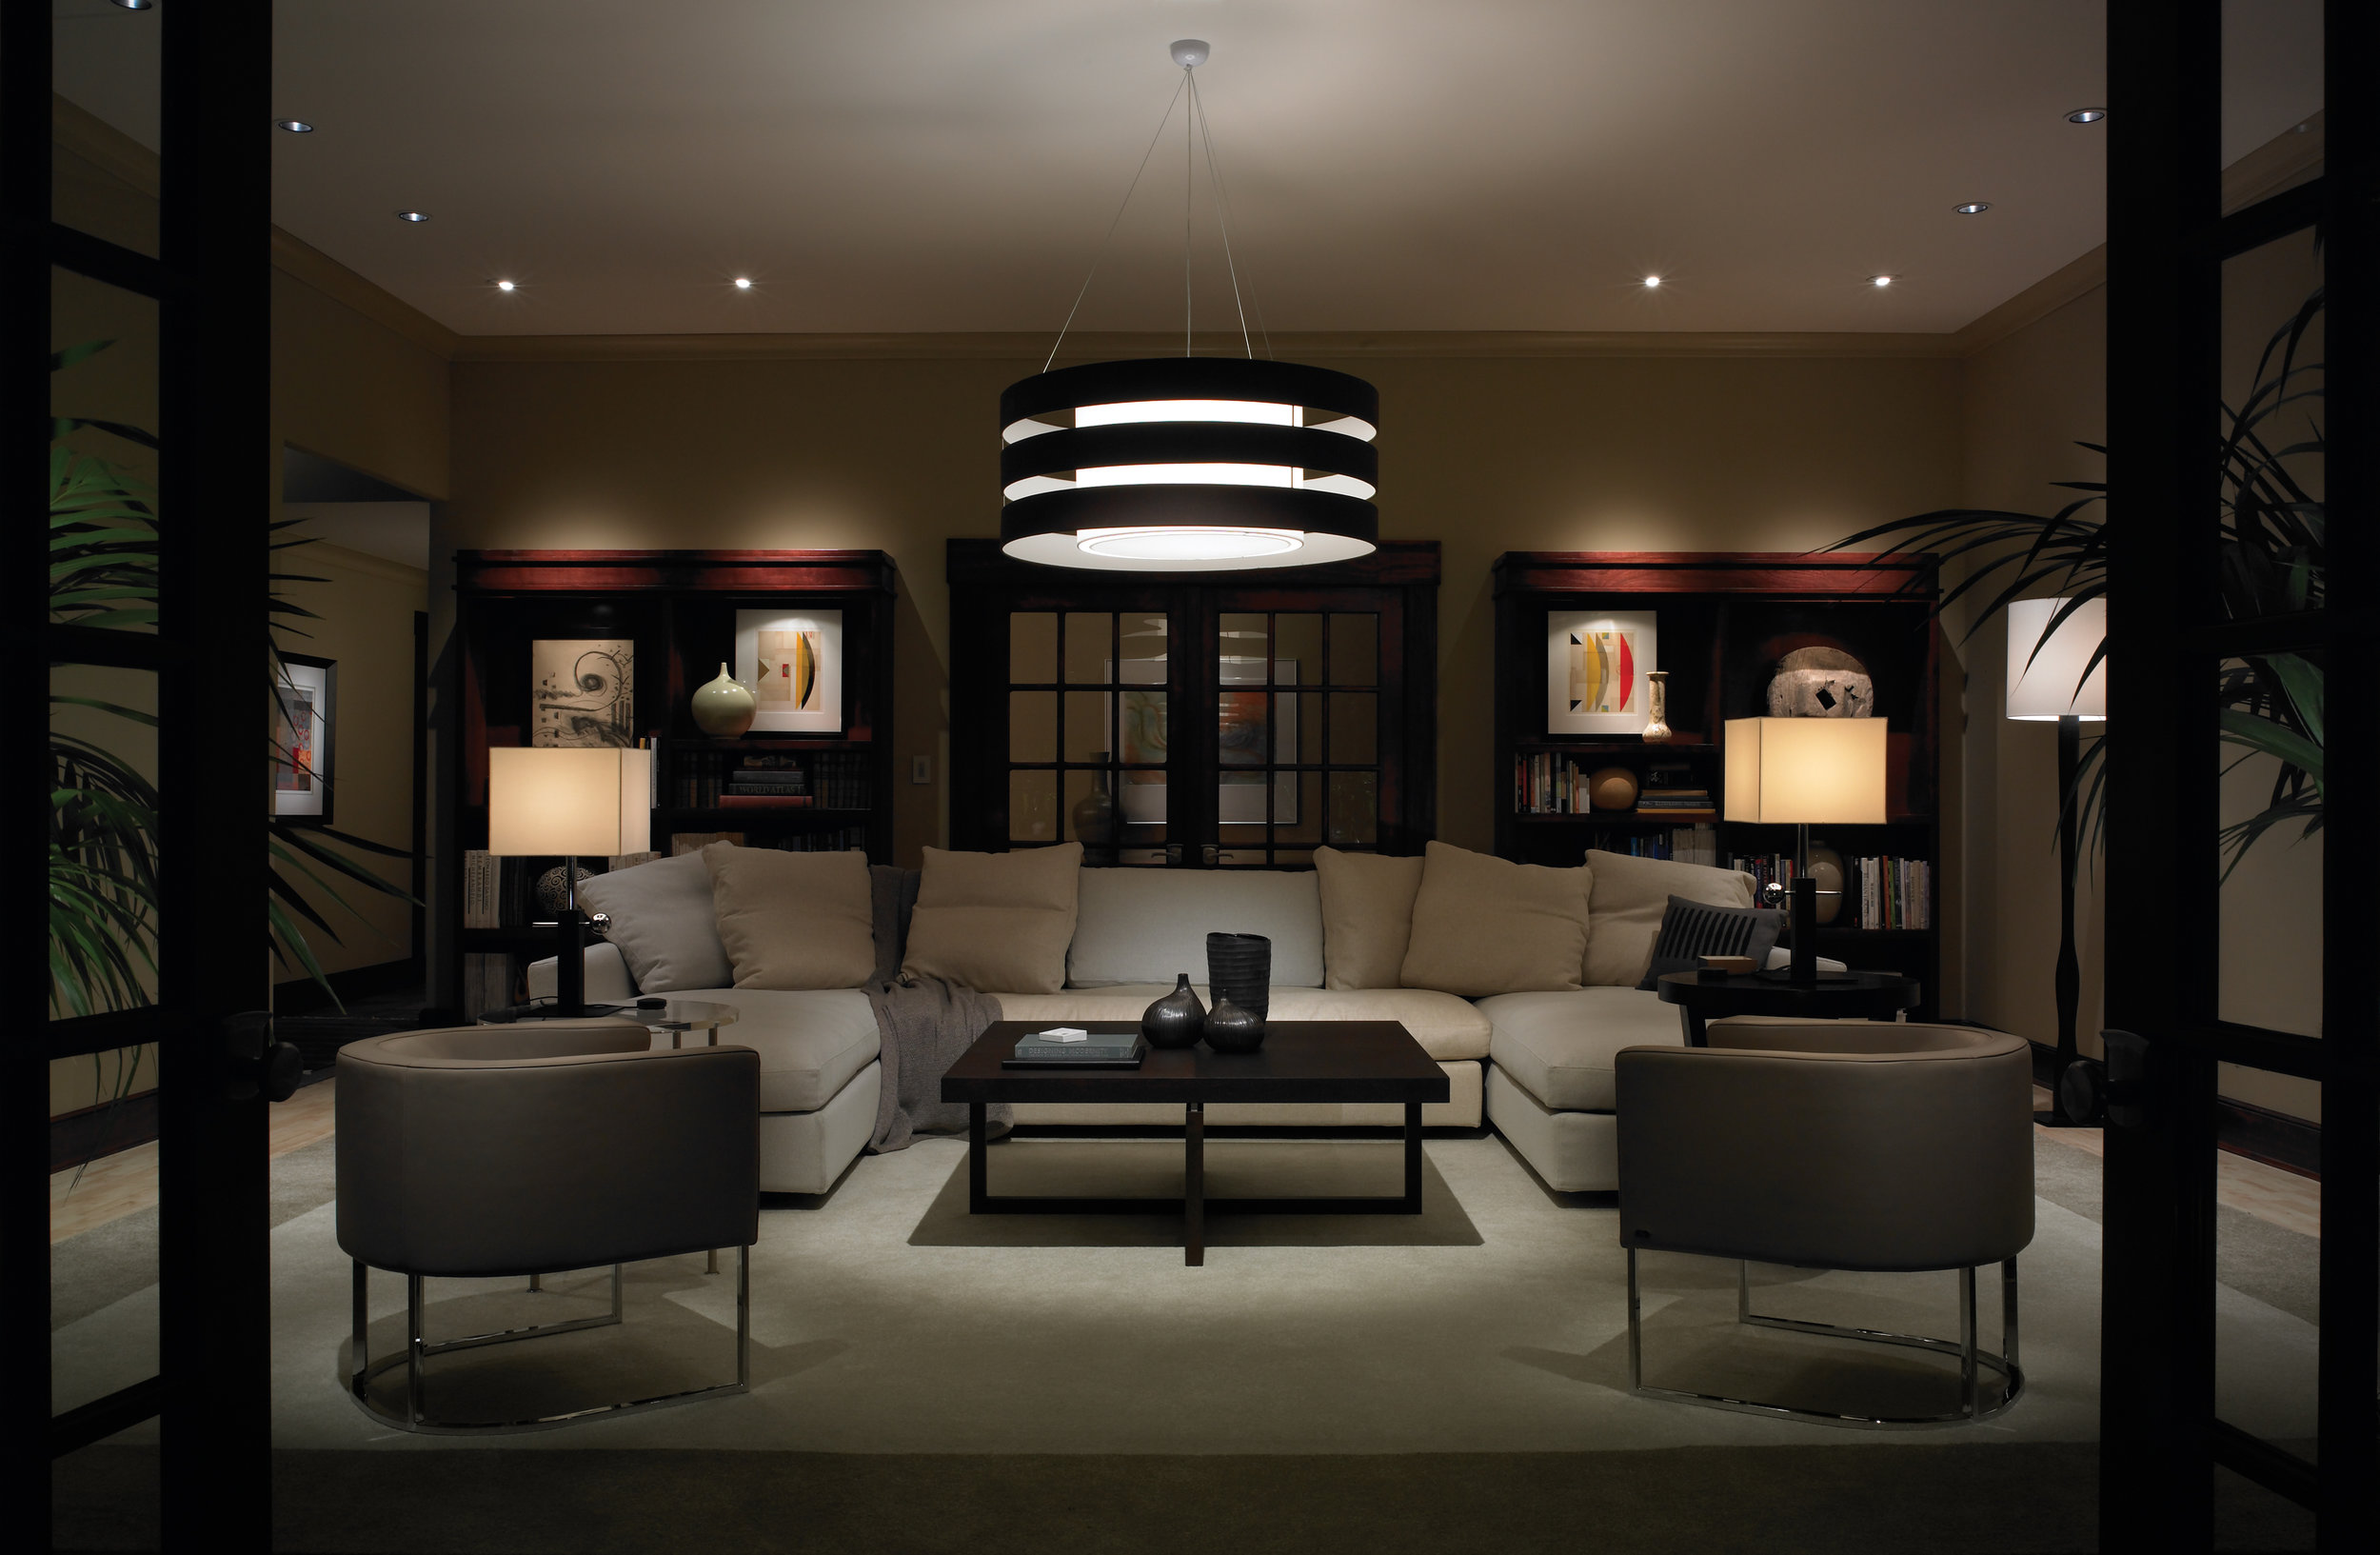 Lighting and intelligent control make your spaces more enjoyable.